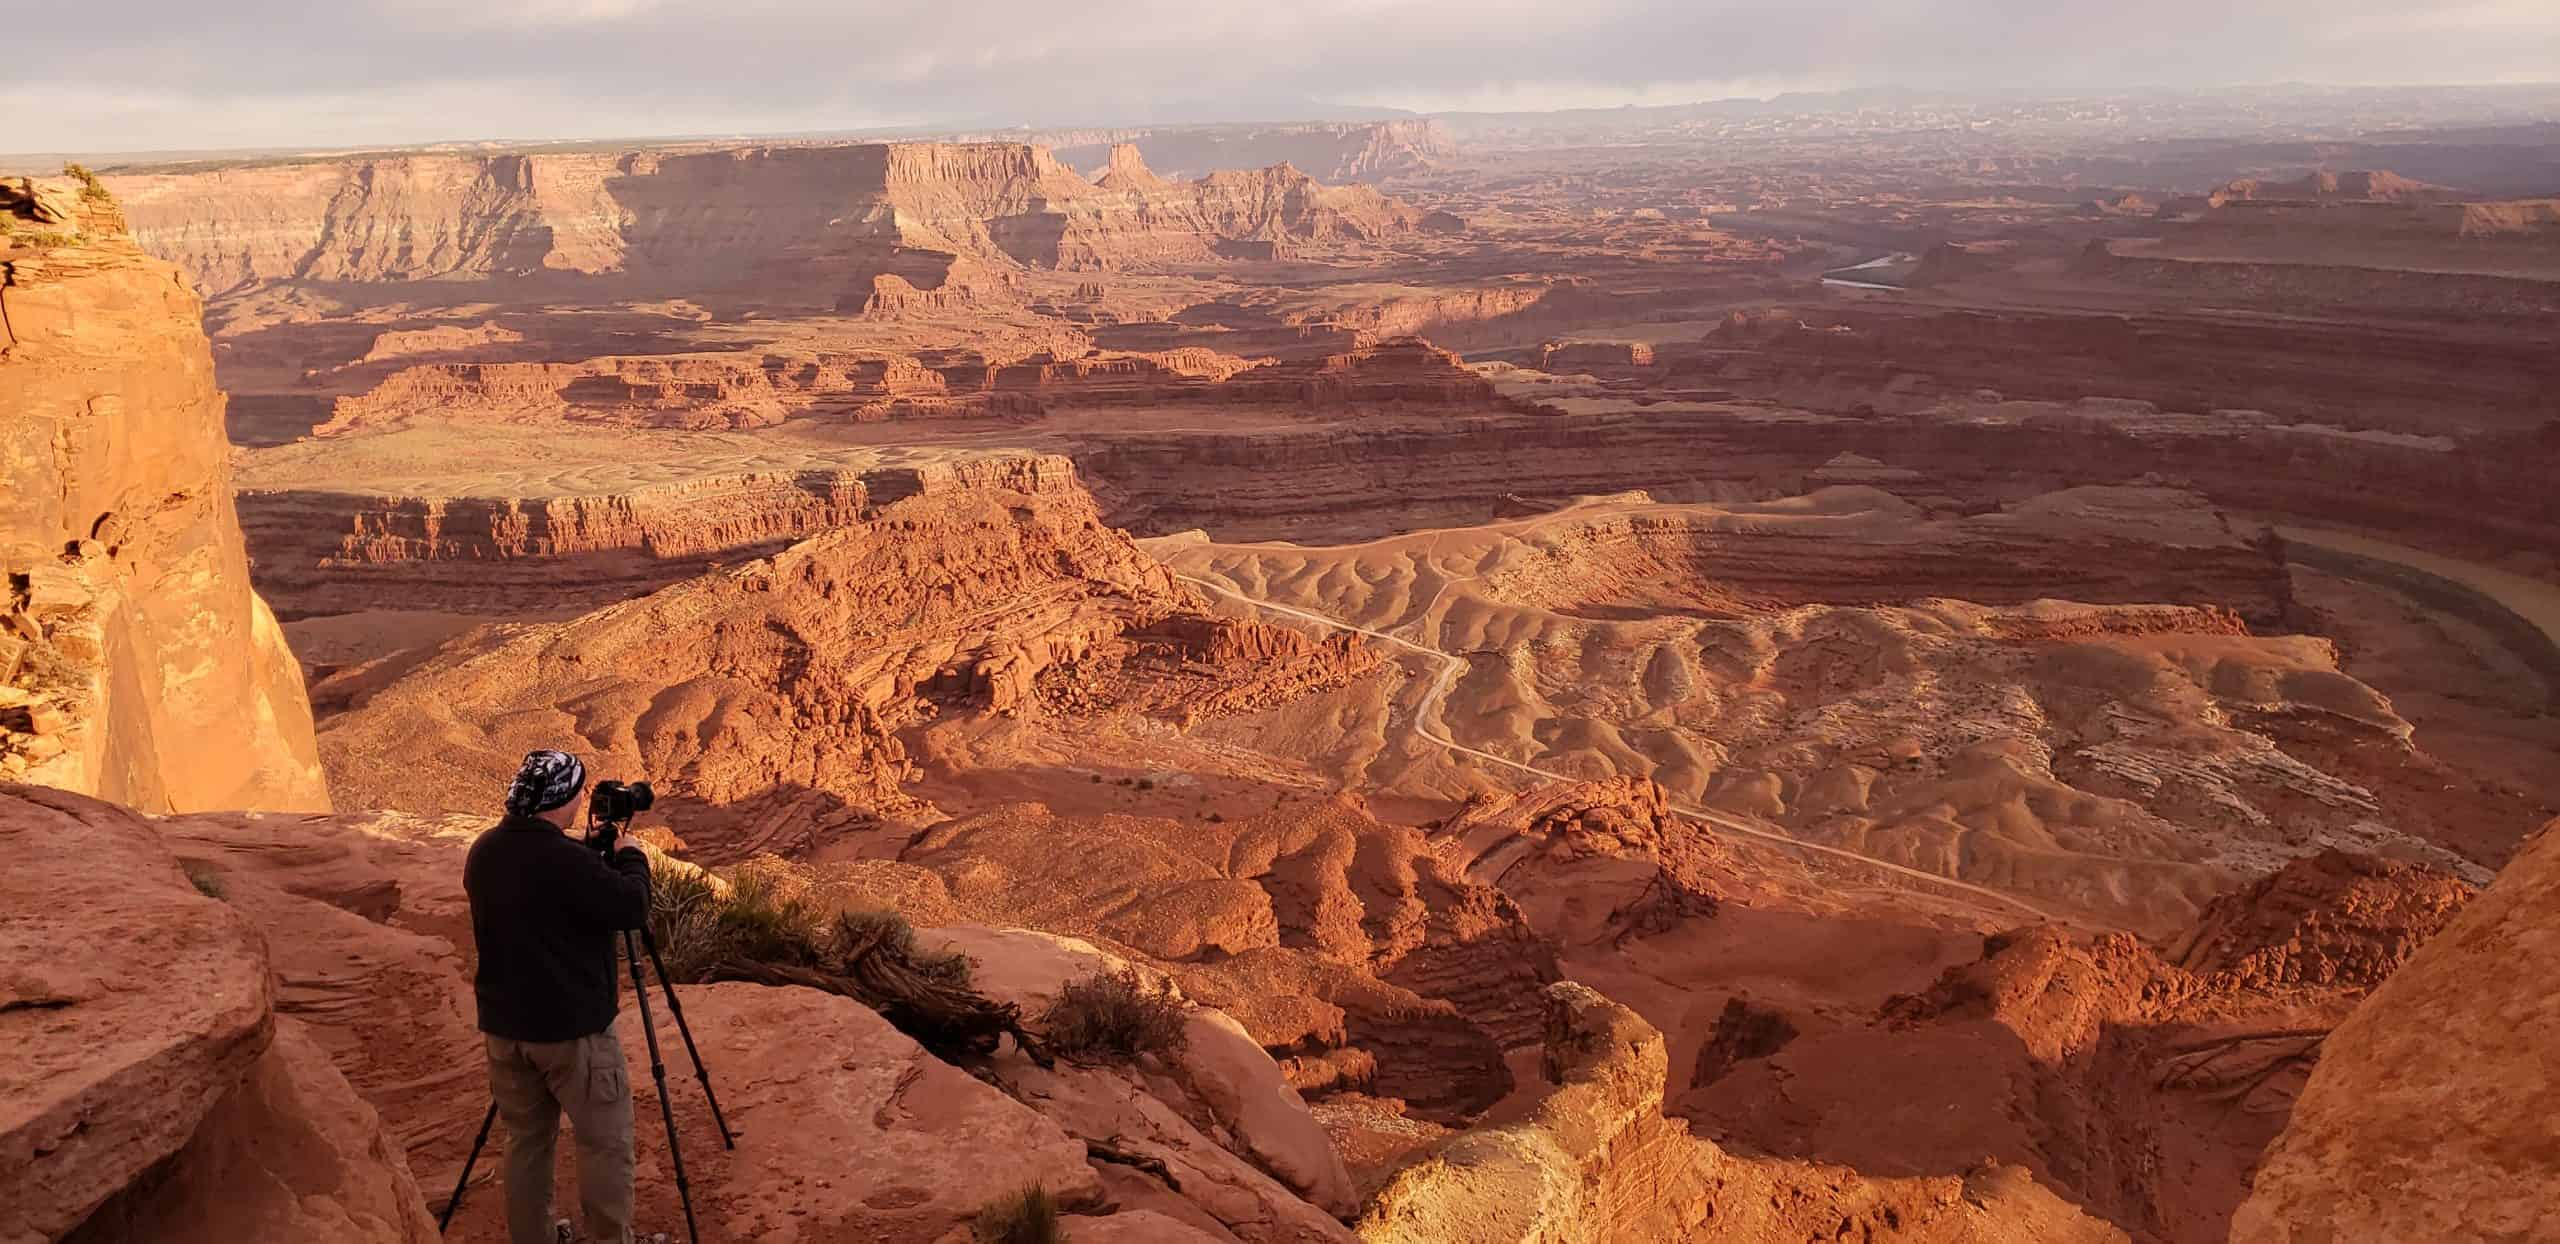 Dave photographing Dead Horse Point at sunset.